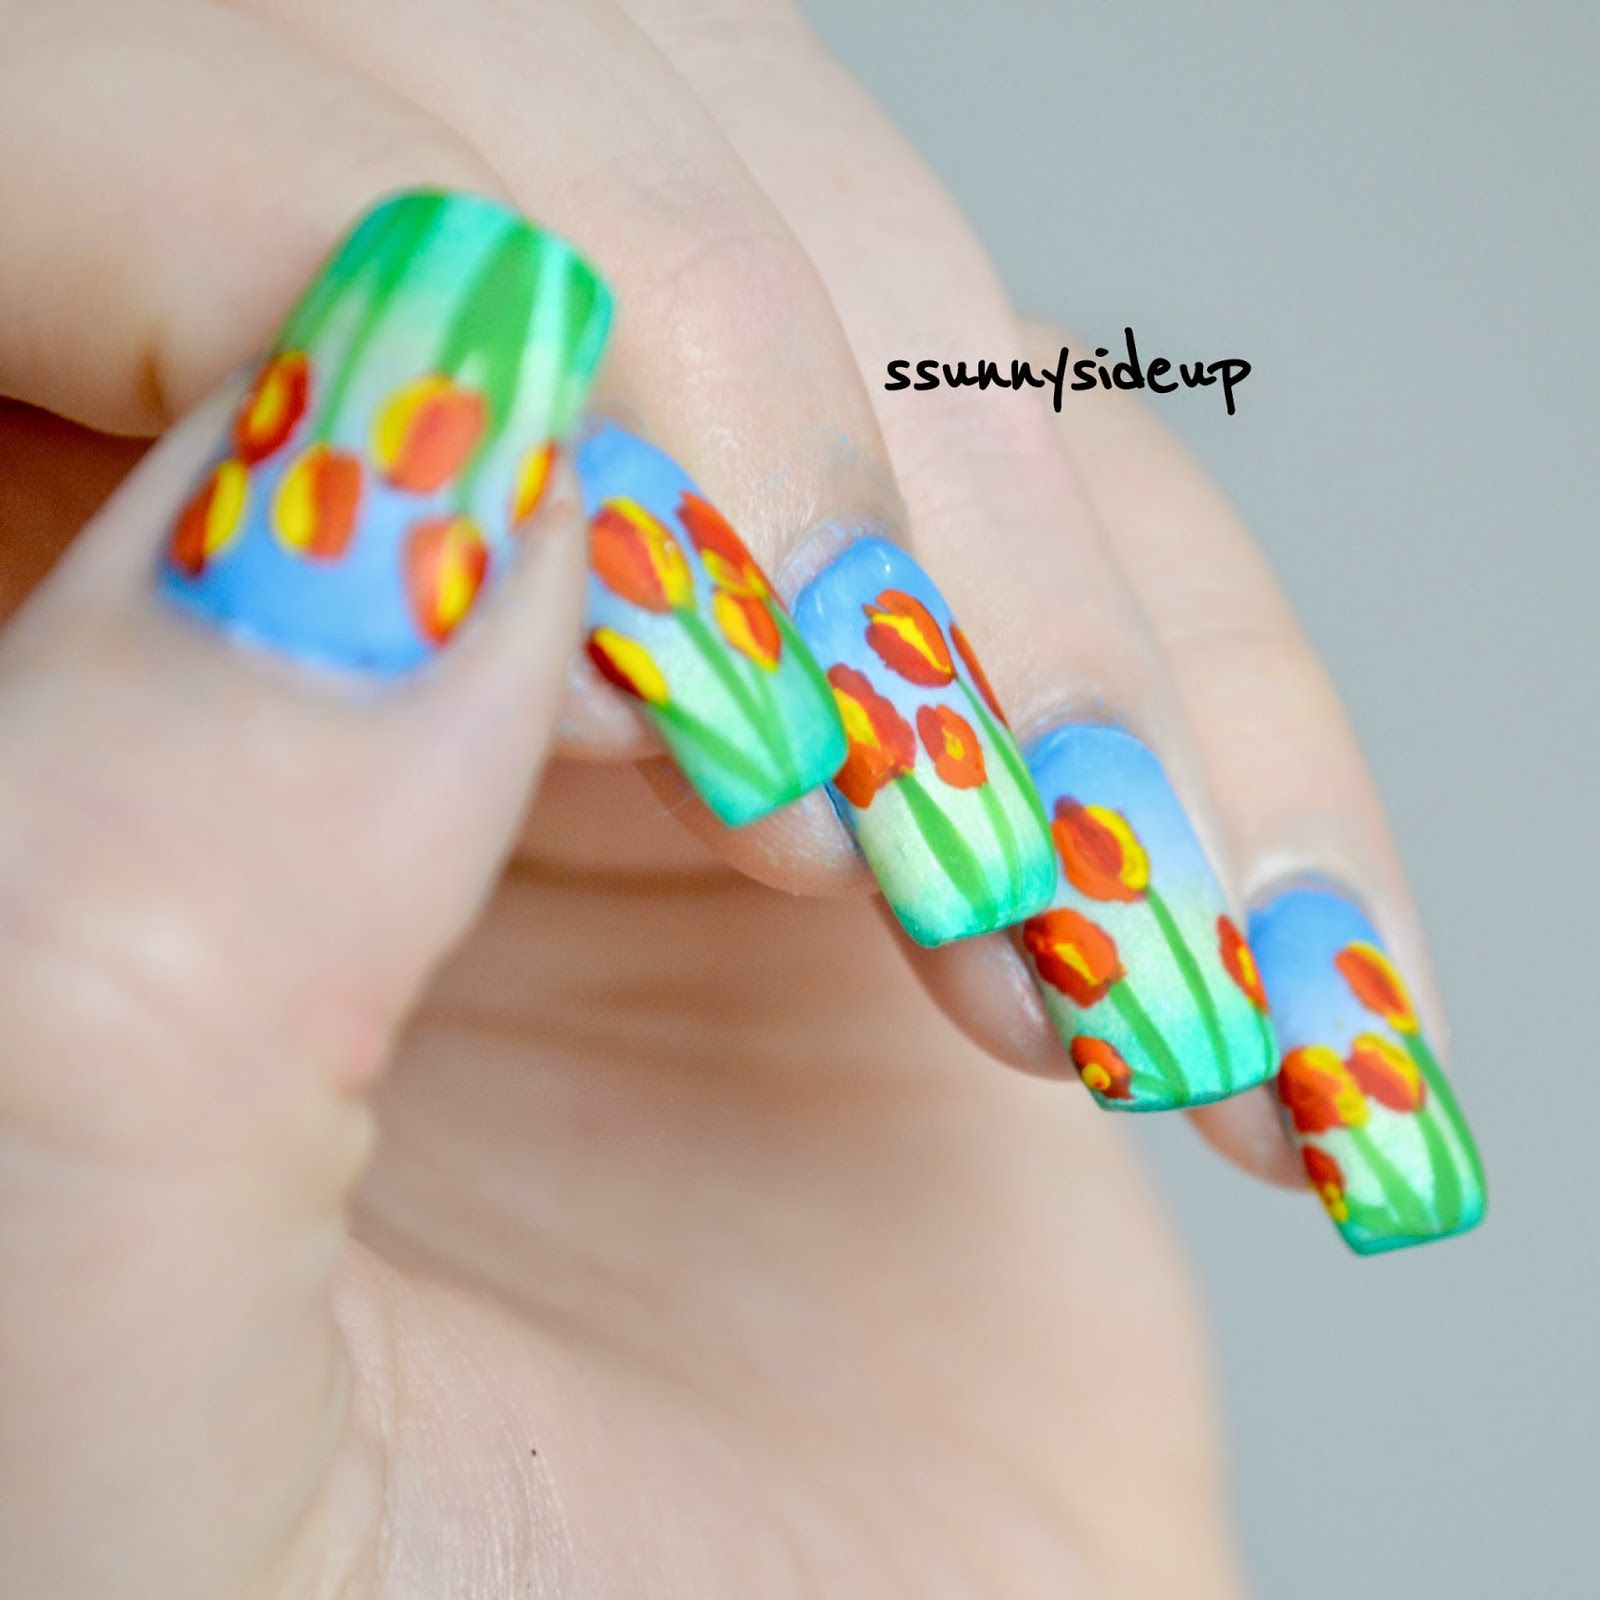 ssunnysideup: Handpainted abstract tulip nails with graadient done ...